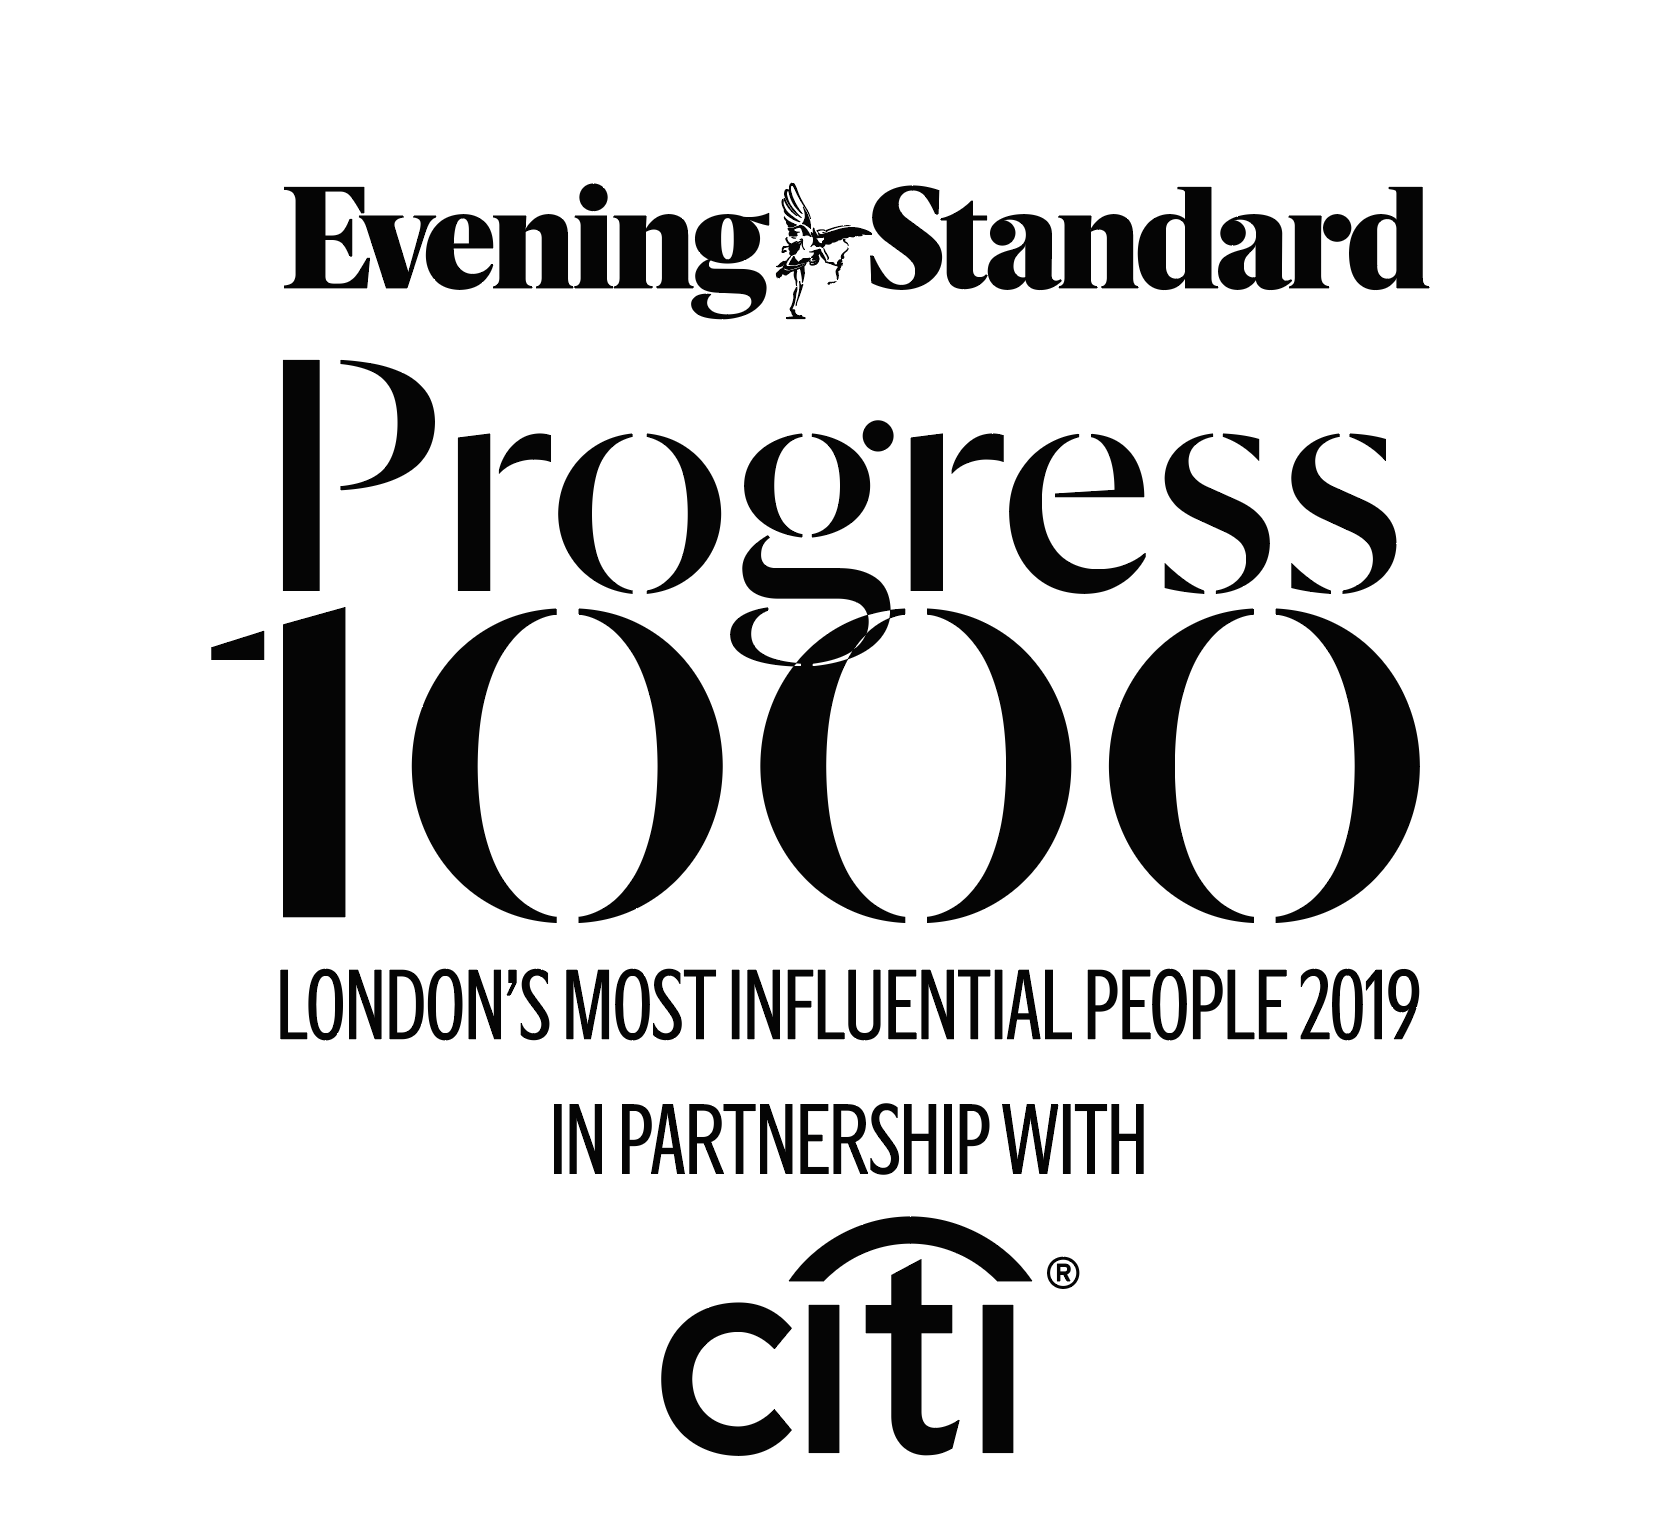 Evening Standard Progress 1000 2019 In Partnership With Citi